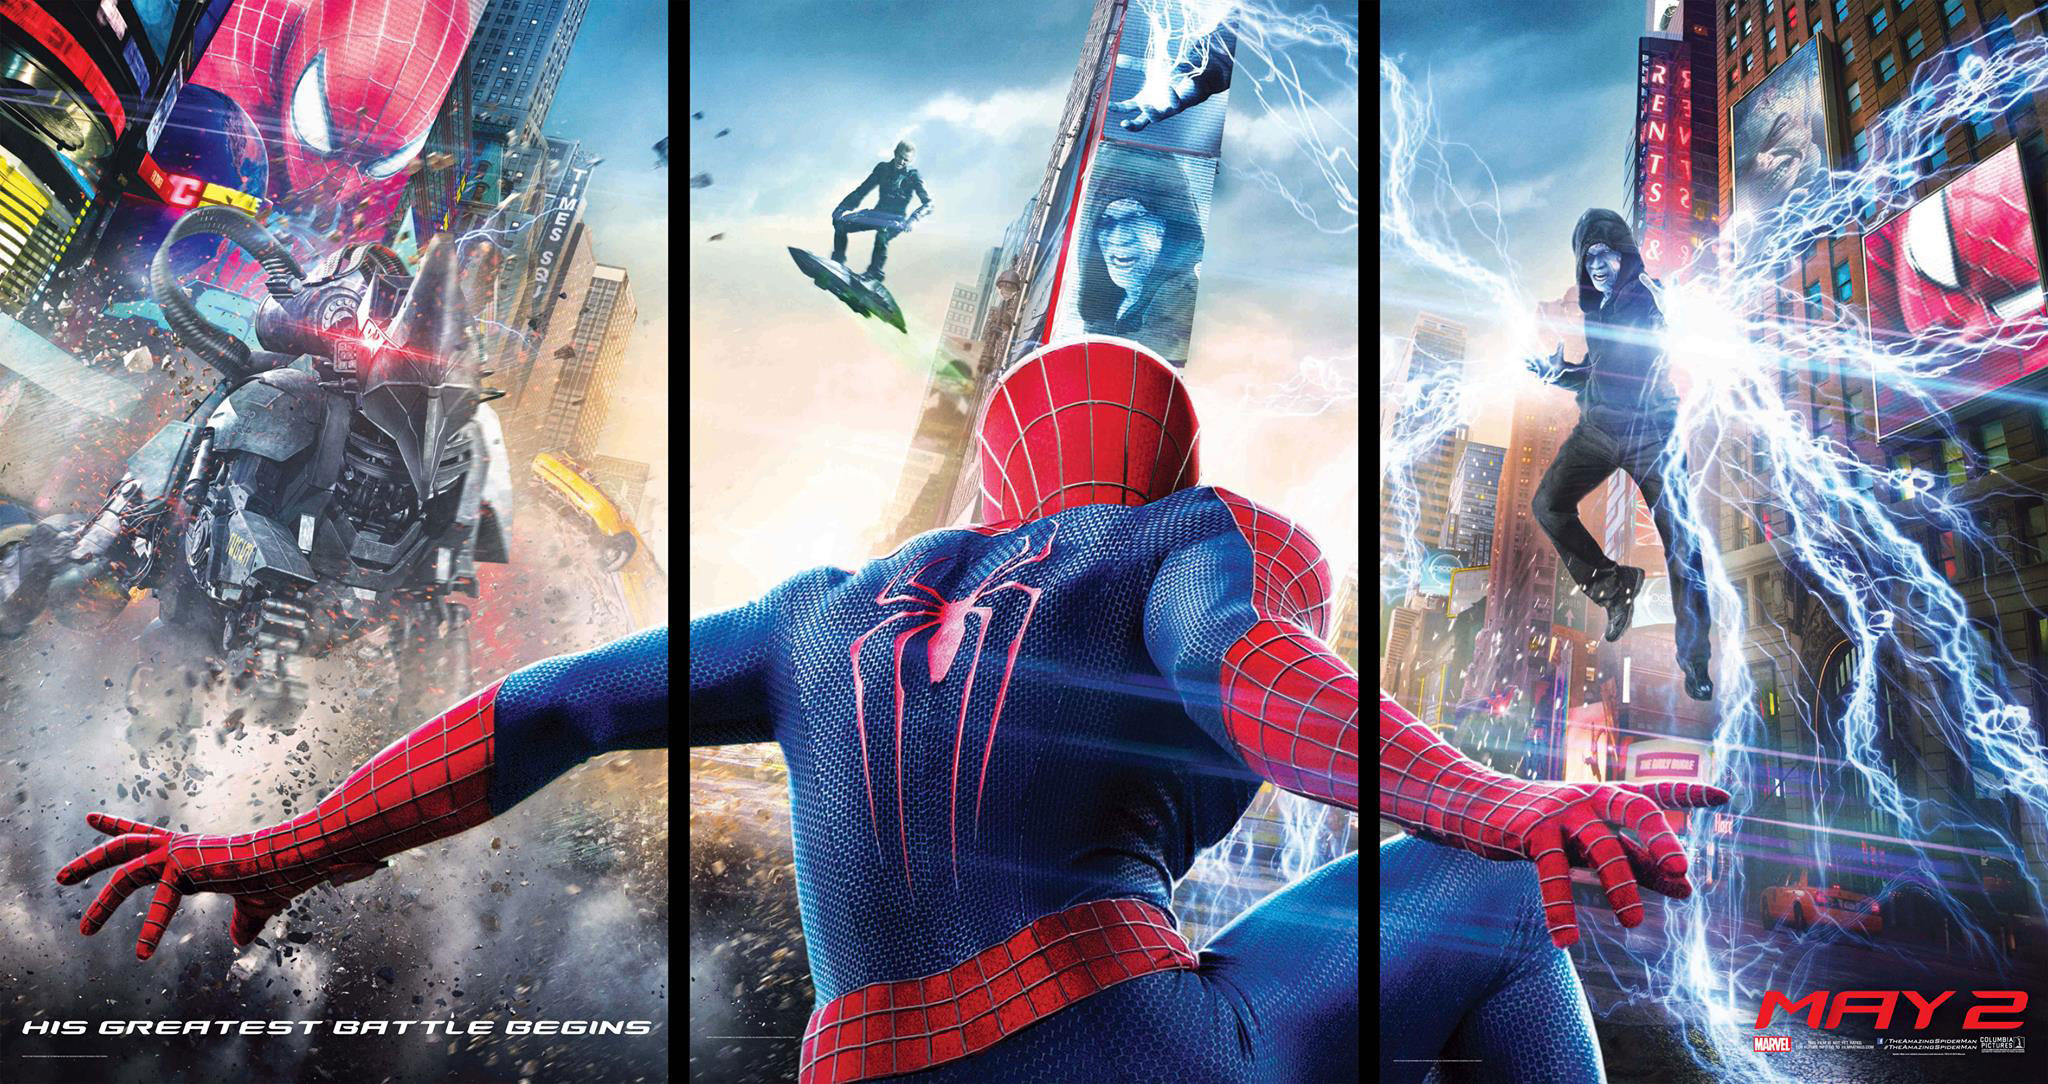 'Venom' and 'The Sinister Six' Will Get Standalone Films After 'The Amazing Spider-Man 3'...